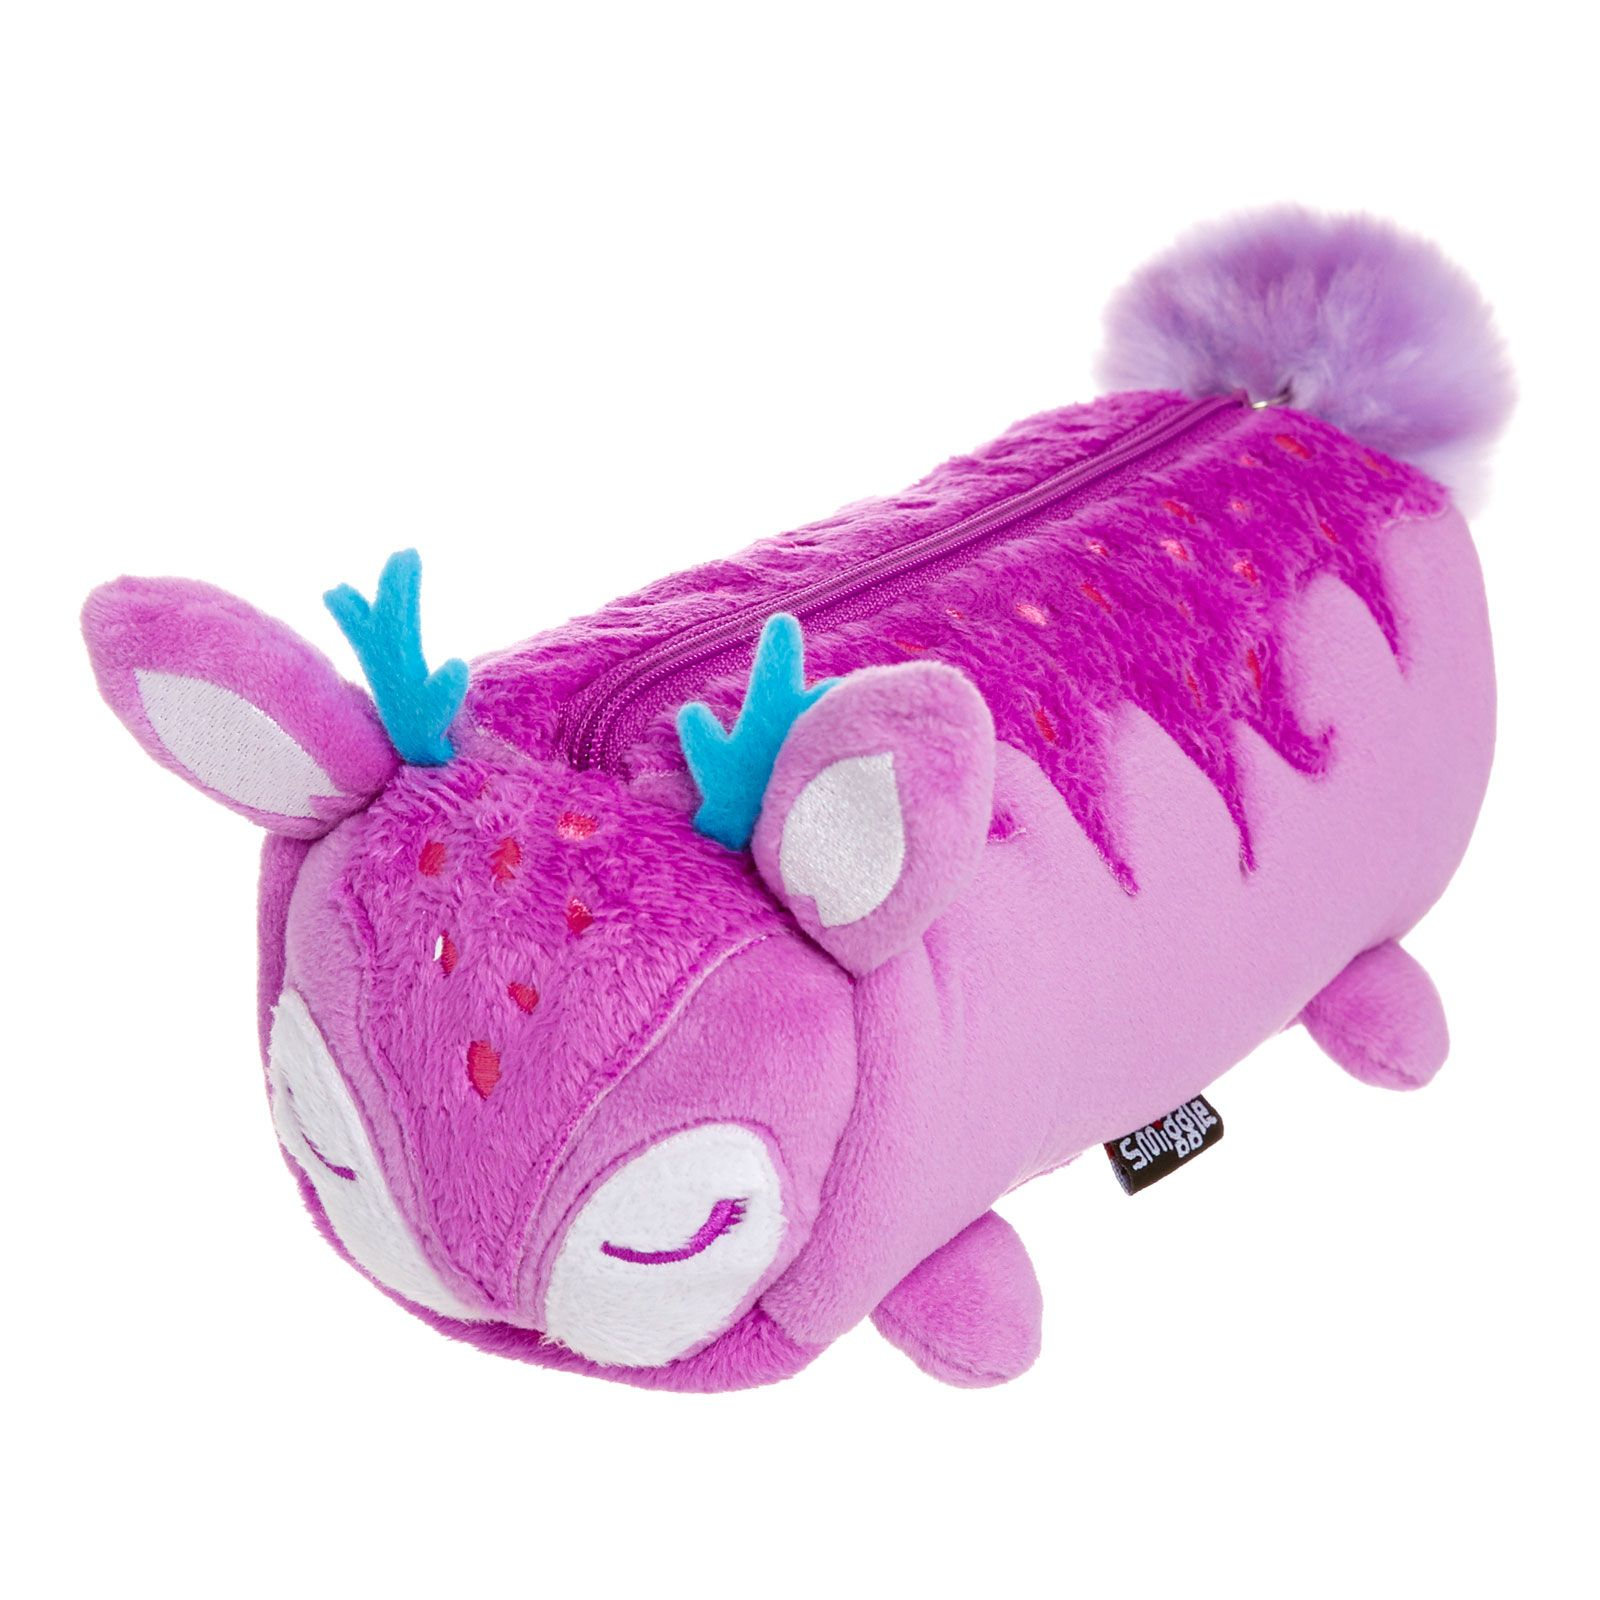 Image for Smiggle Pals Pencil Case from Smiggle UK | Stationary ...